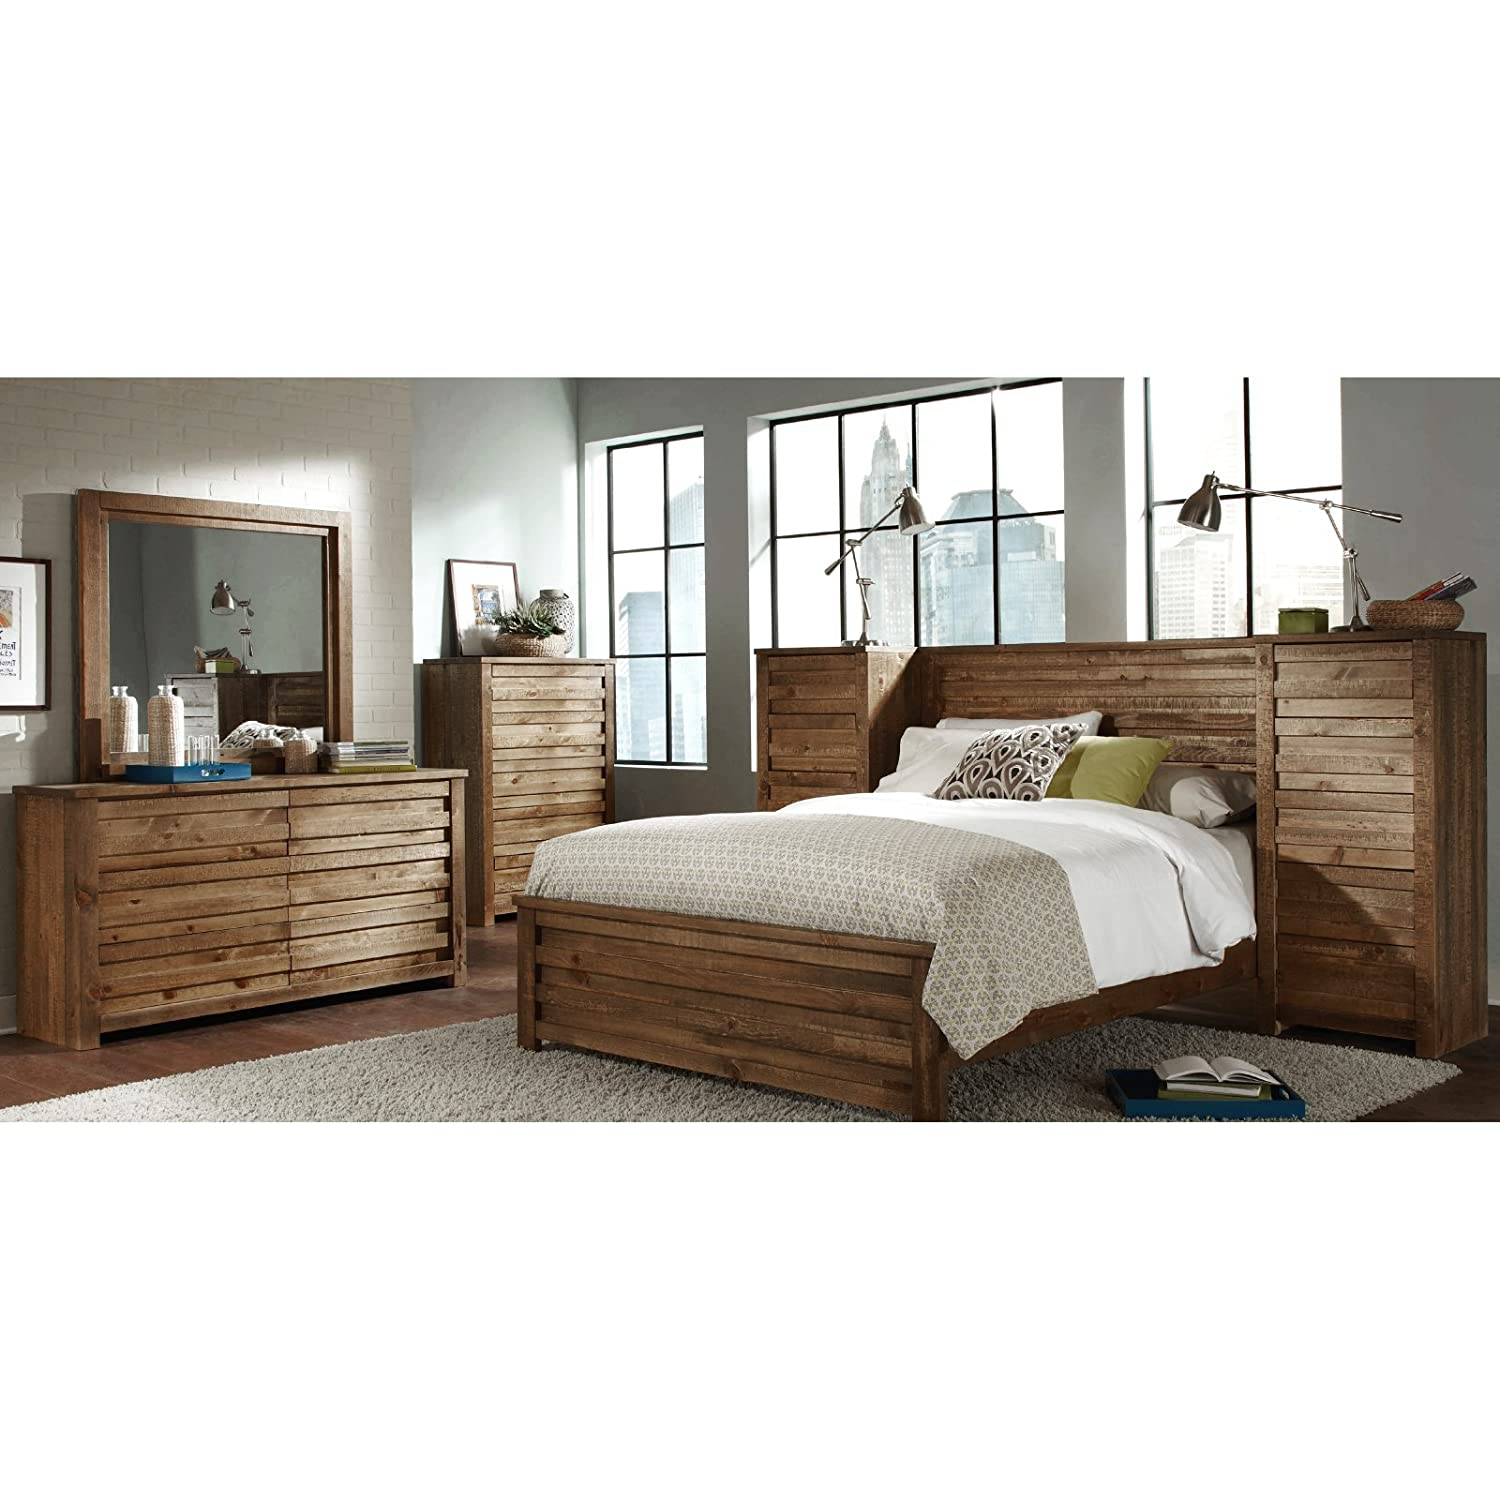 Melrose Furniture #21 - Amazon.com